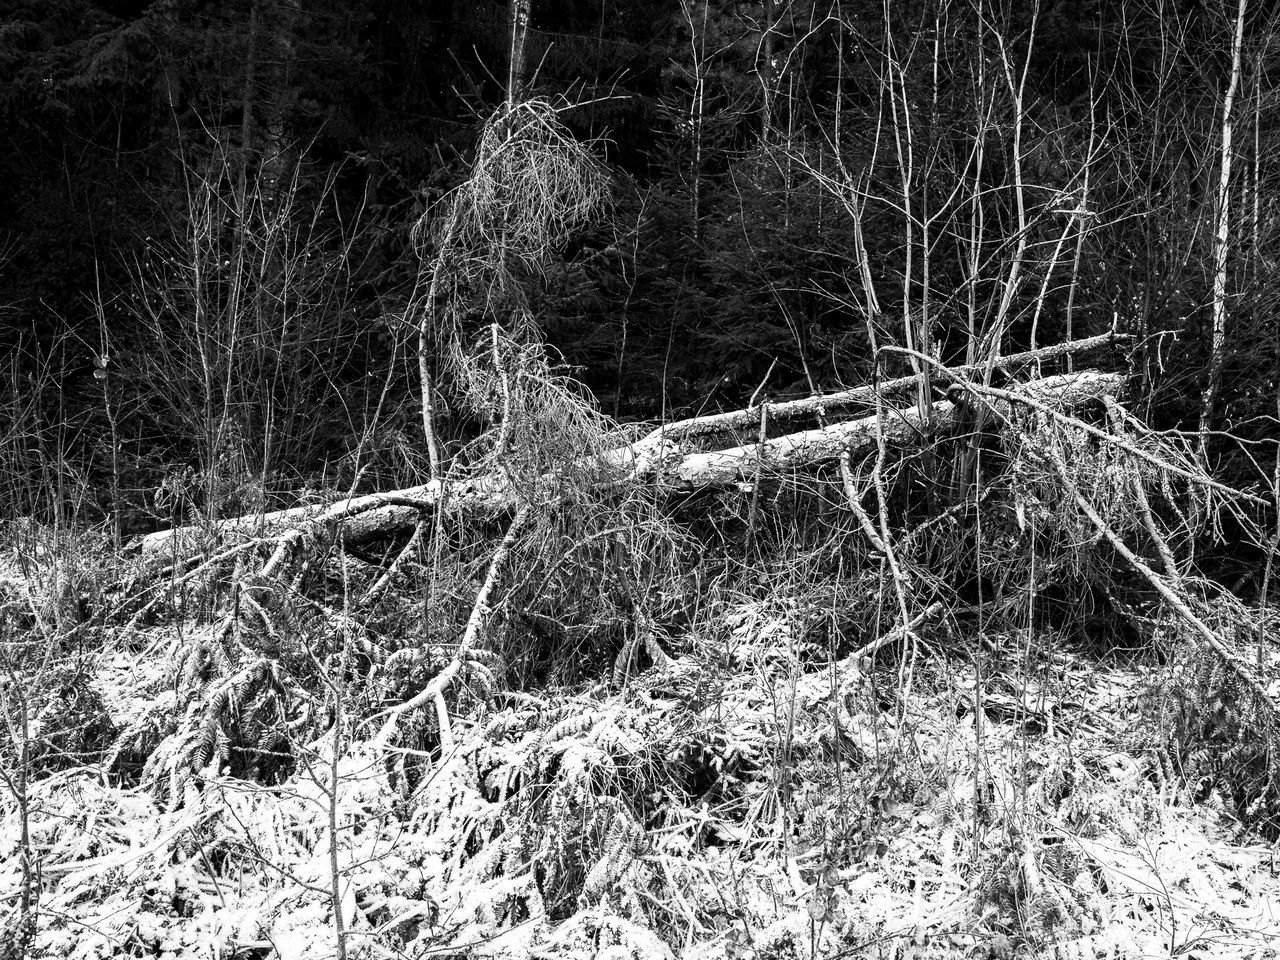 Fallen tree in the forrest, with the second frost in the Autumn. Beauty In Nature Black & White Blackandwhite Close-up Day Fallen Tree First Frost Frost Frosty Autumn Morning Frosty Leaves Frosty Morning Nature No People Norway Outdoors Scandinavia Tree